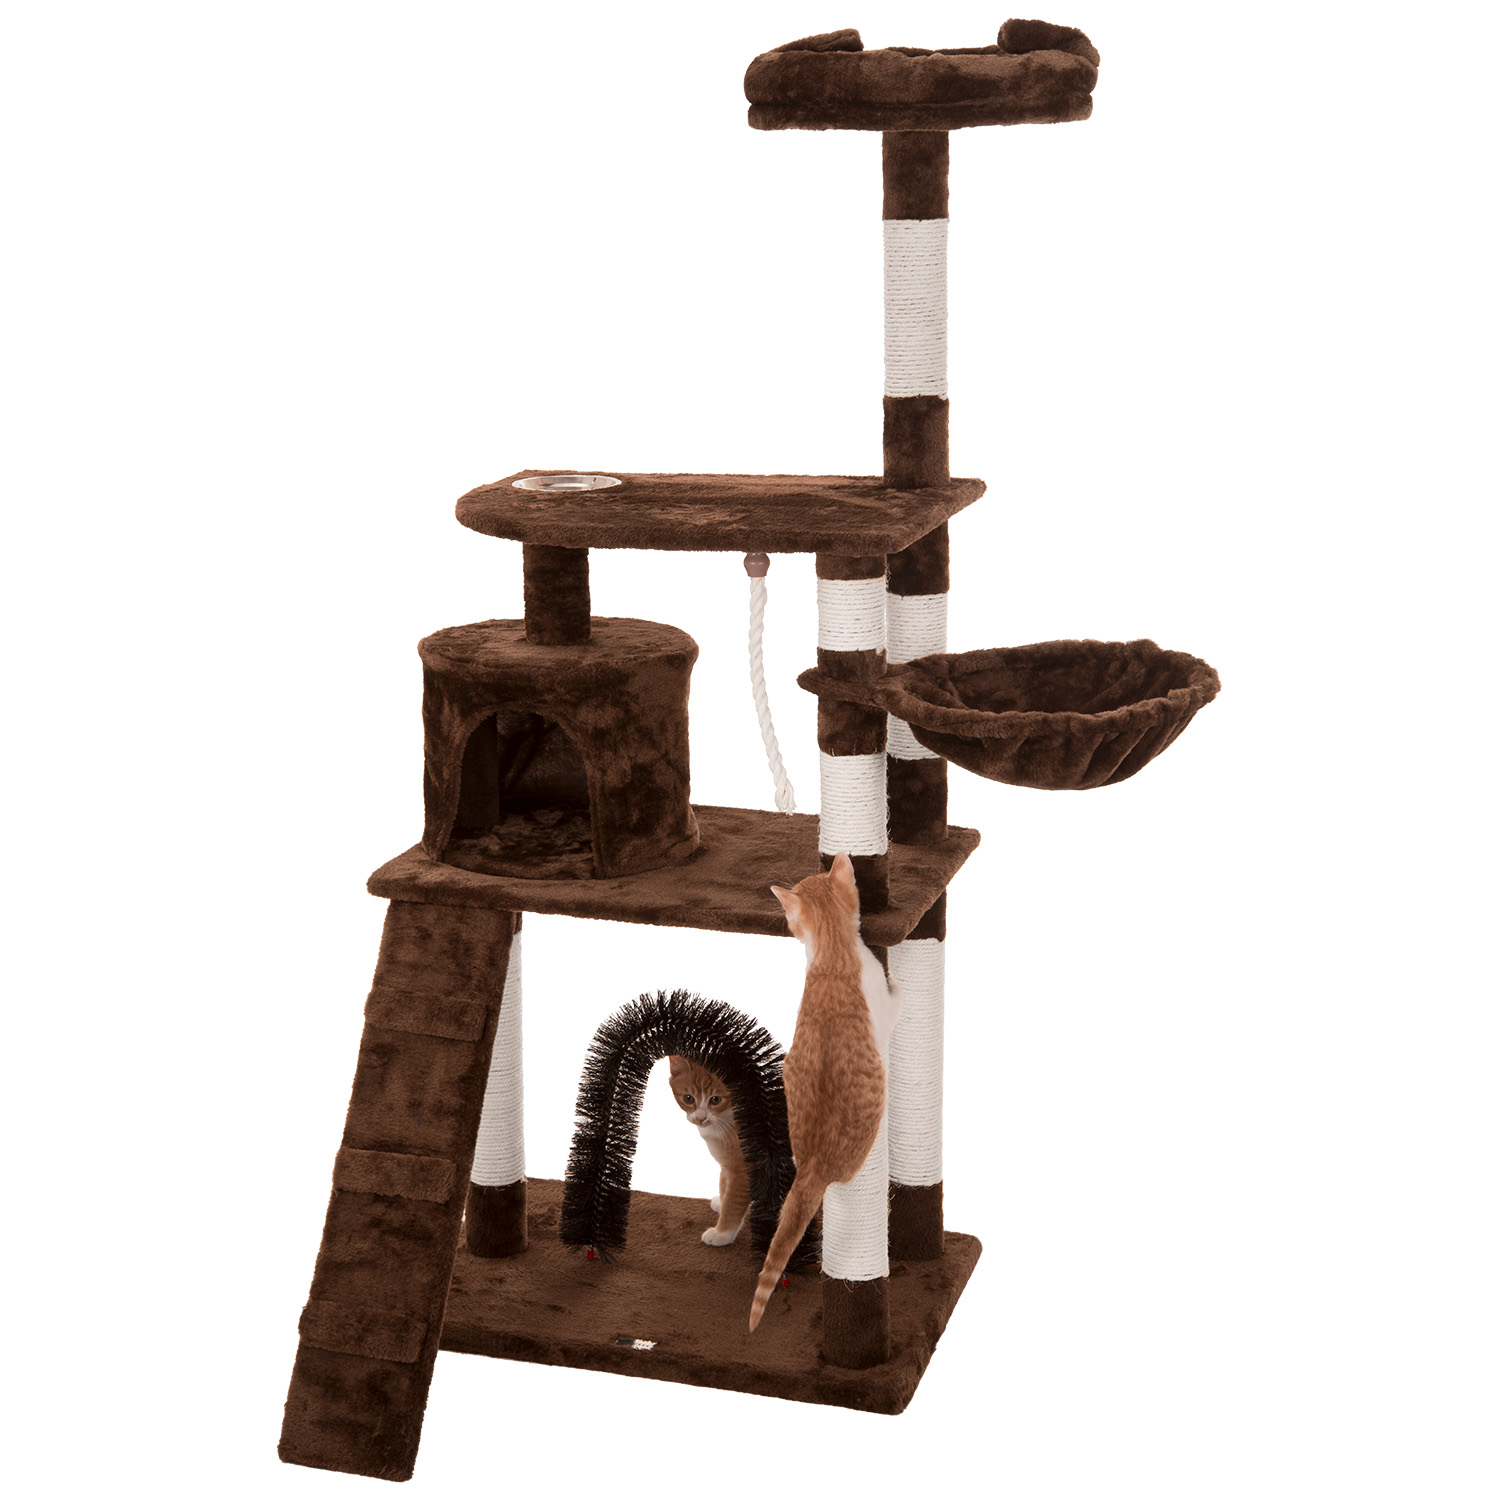 ollieroo cat tree furniture tower climbling activity tree scratcher play house condo hammock with scratching post iconic pet three level cat tree condo with hammock beige   aaa      rh   aaanational corporateperks